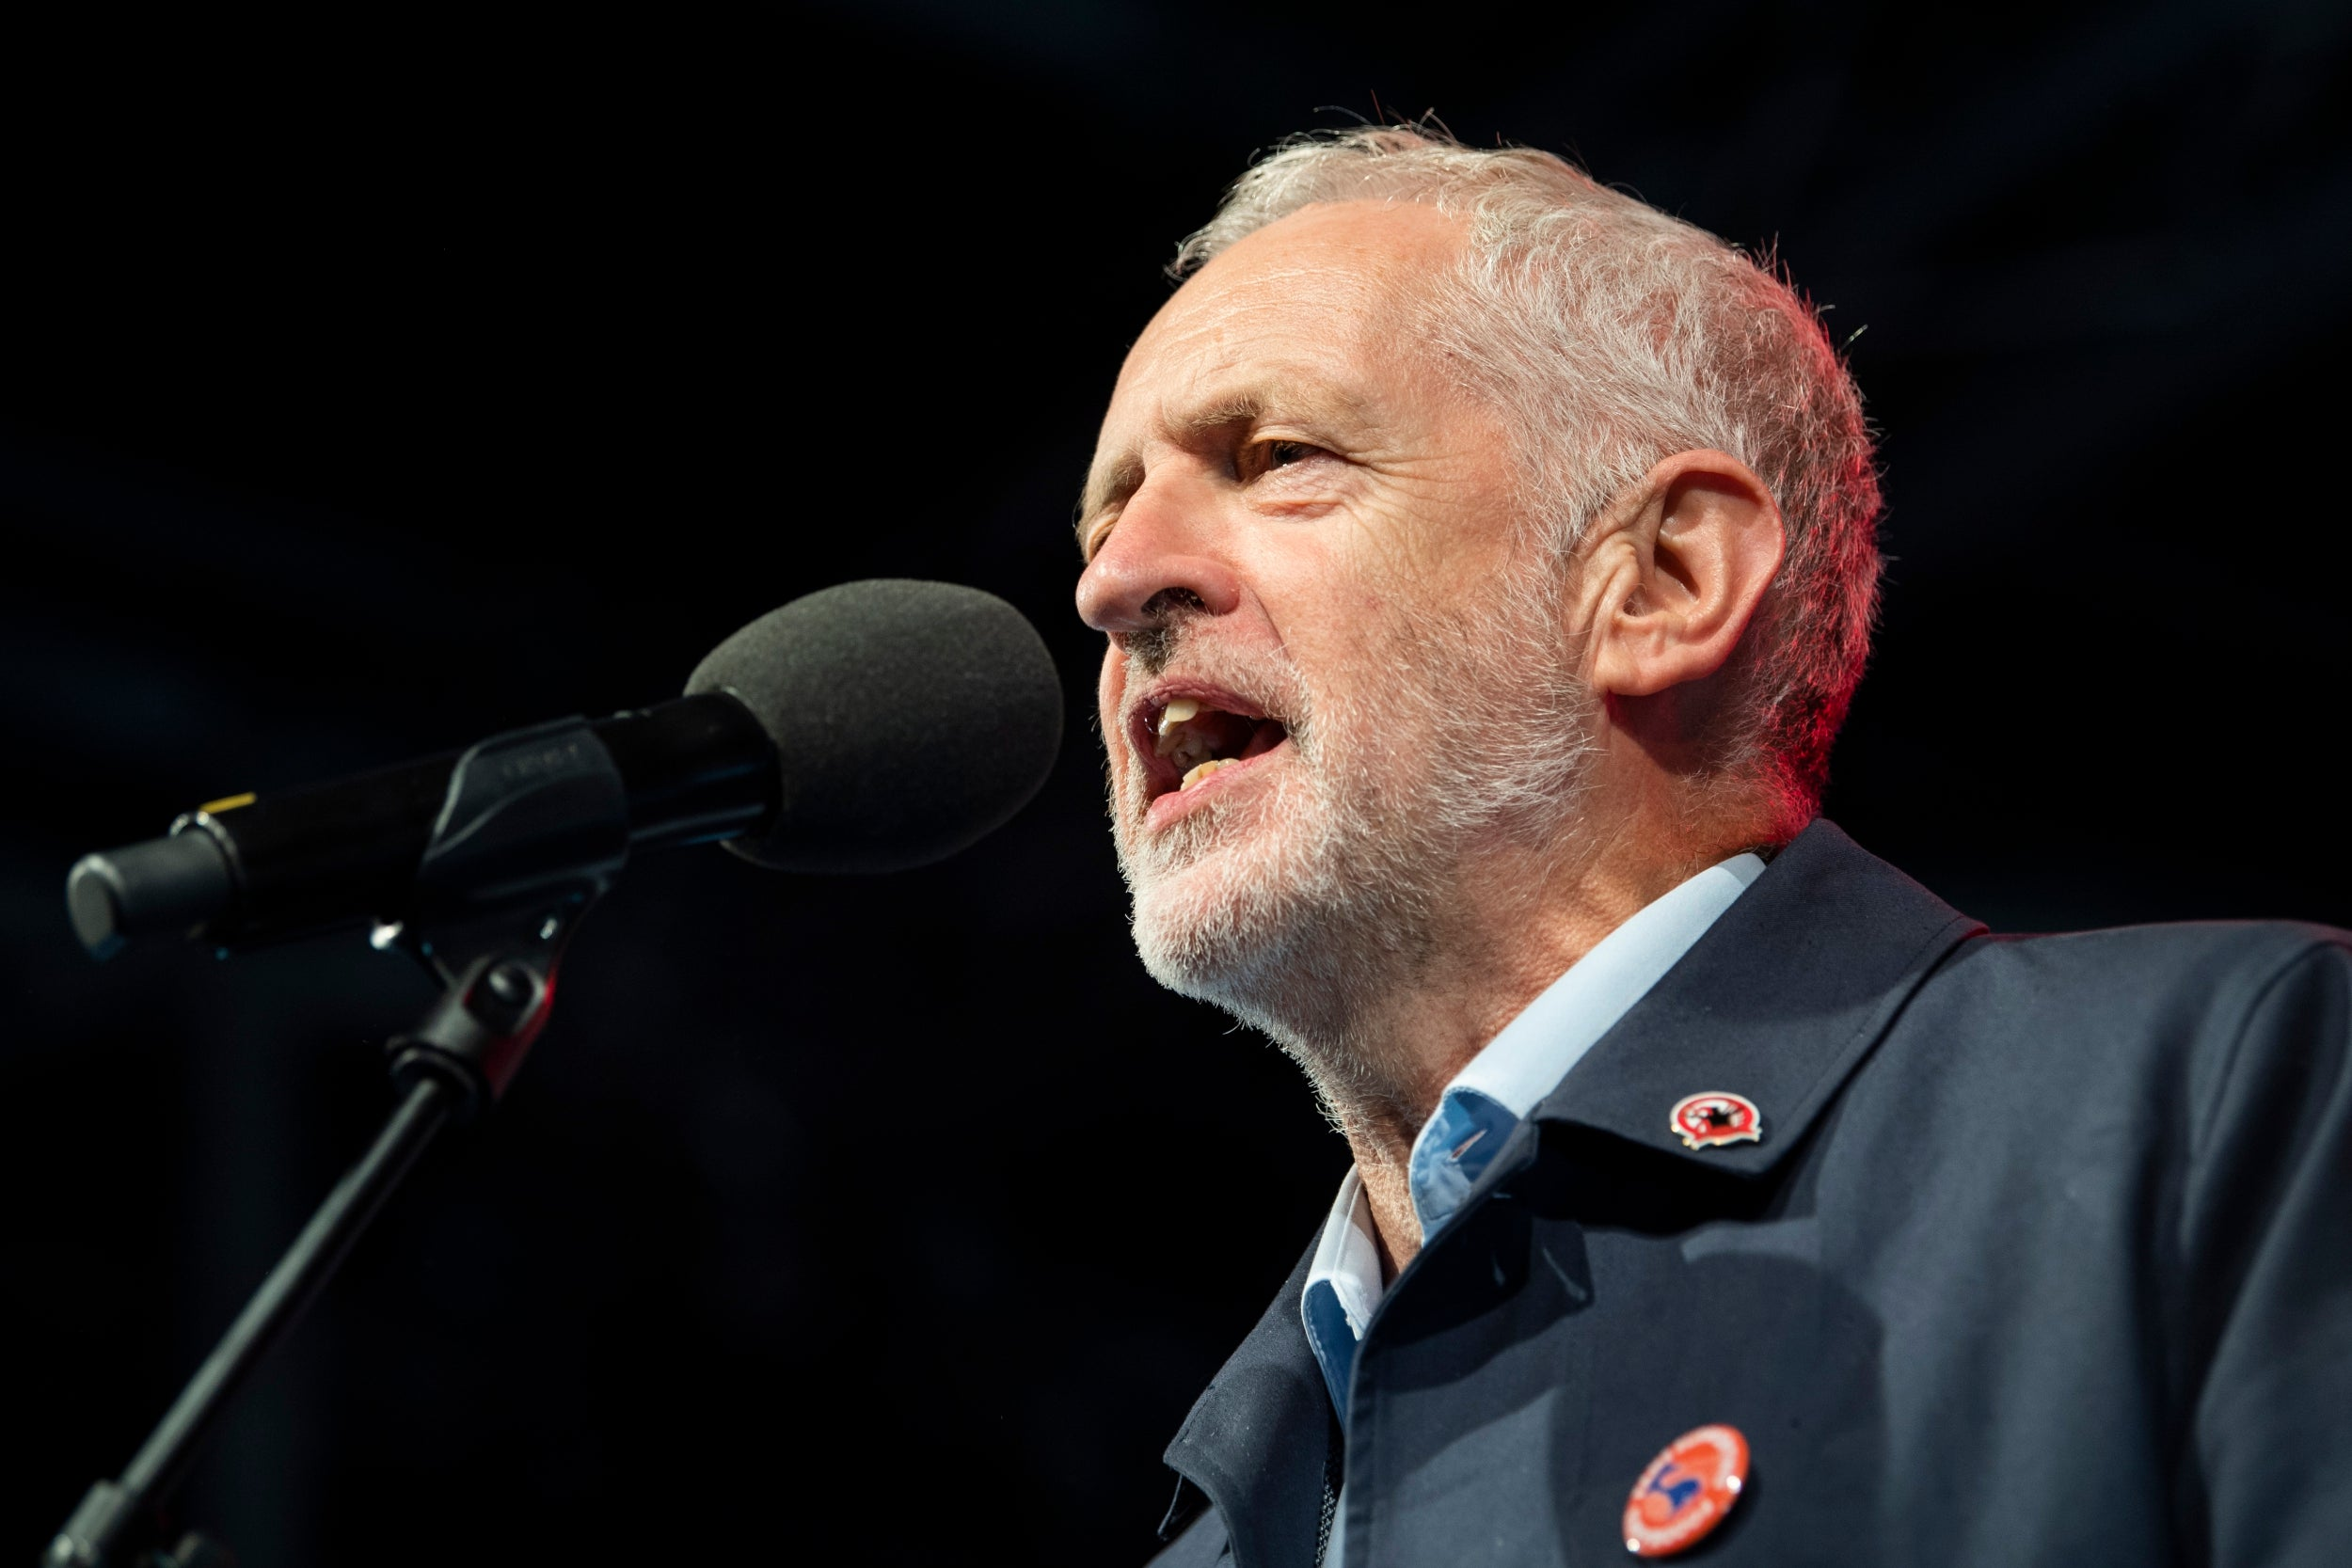 952ac28997f Workers to make up one third of company board members under Labour, Jeremy  Corbyn vows | The Independent